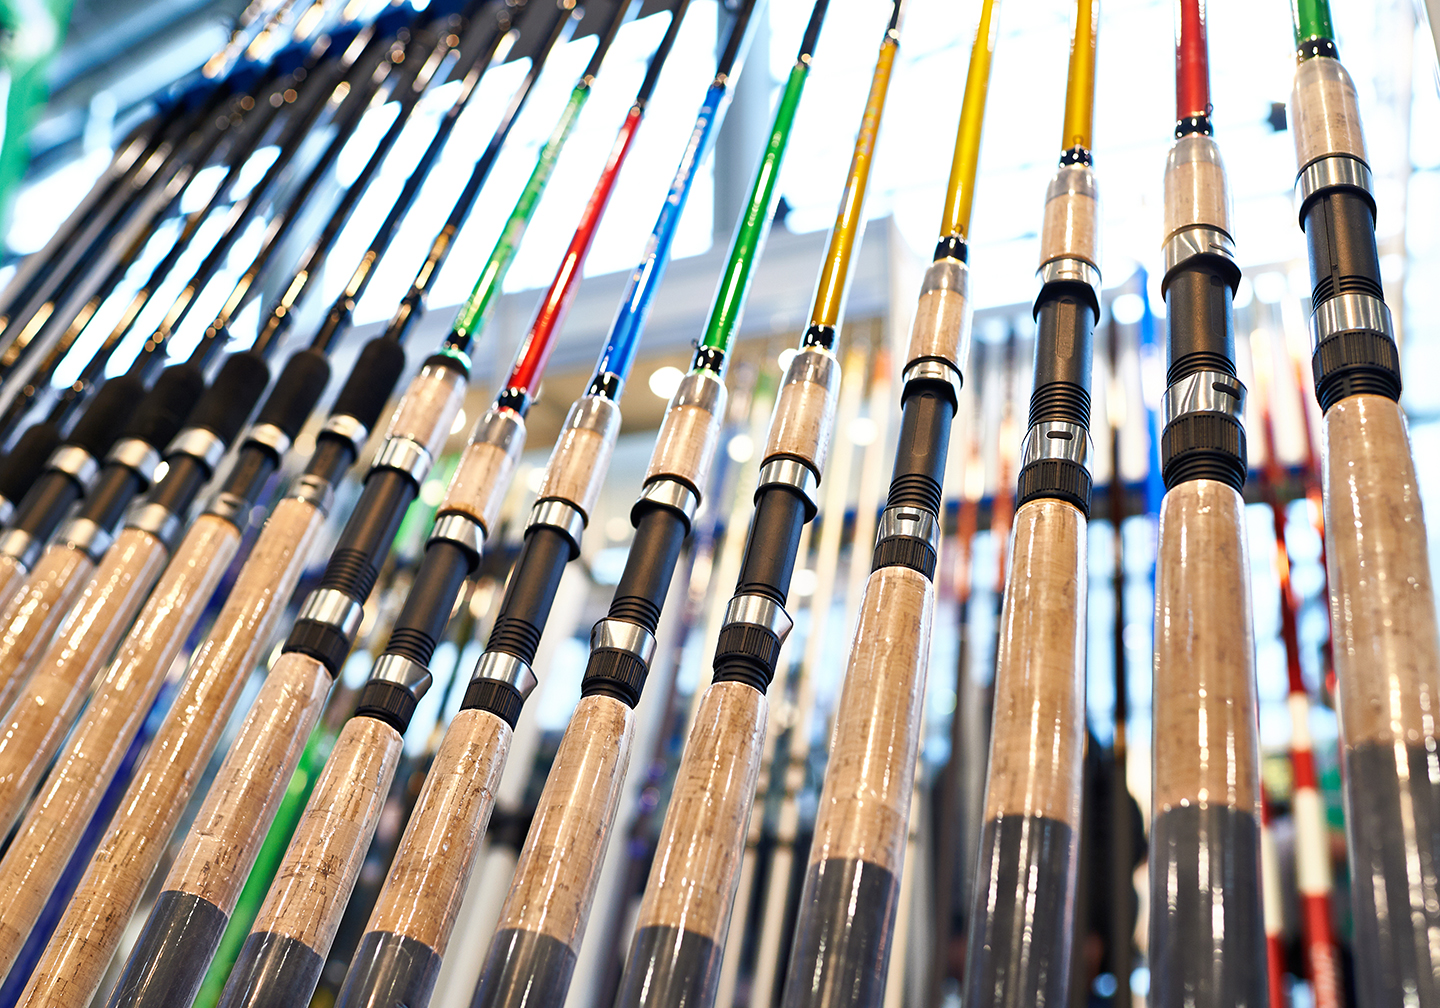 A selection of fishing rods with different colored blanks